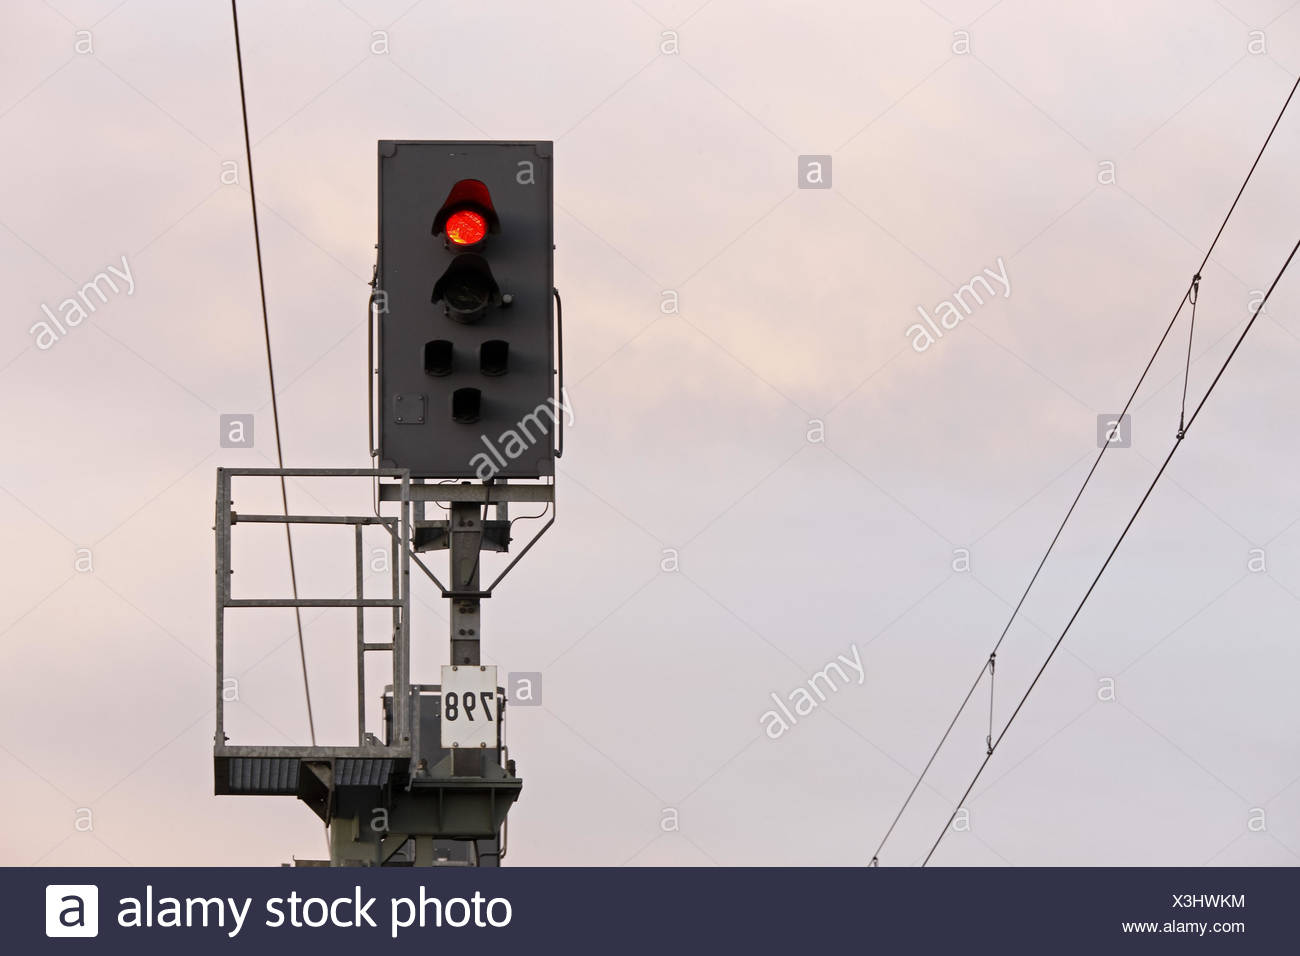 Rail line, light signal, - Stock Image